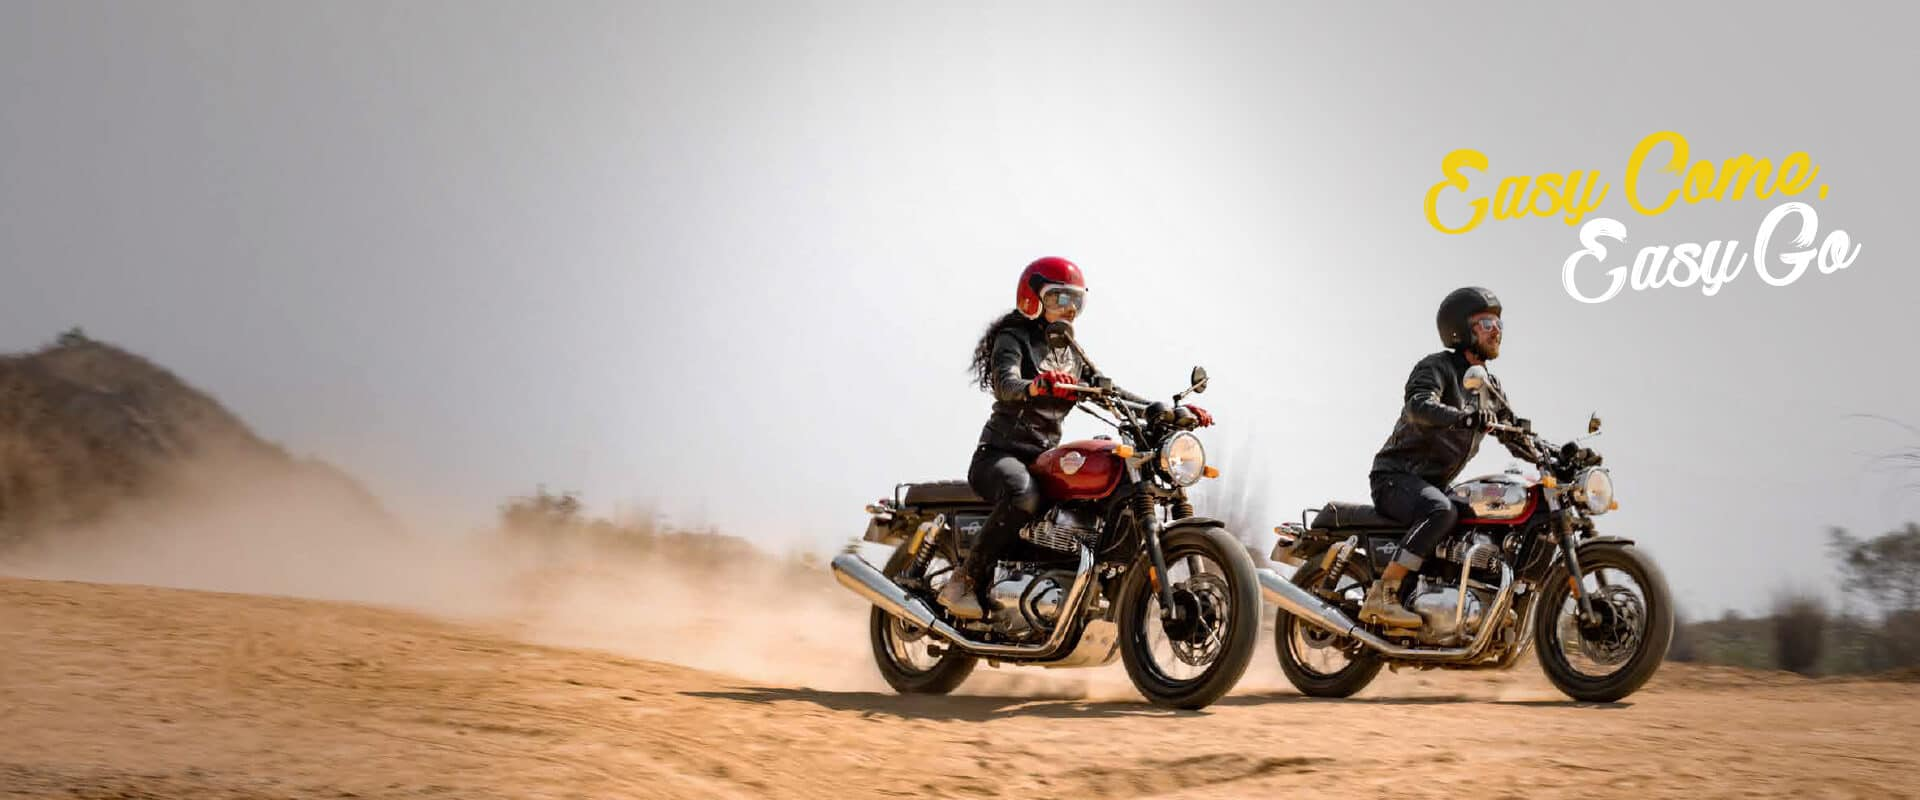 The Royal Enfield Interceptor has a relaxed, sit-up riding position, sure to bring a smile to your face.